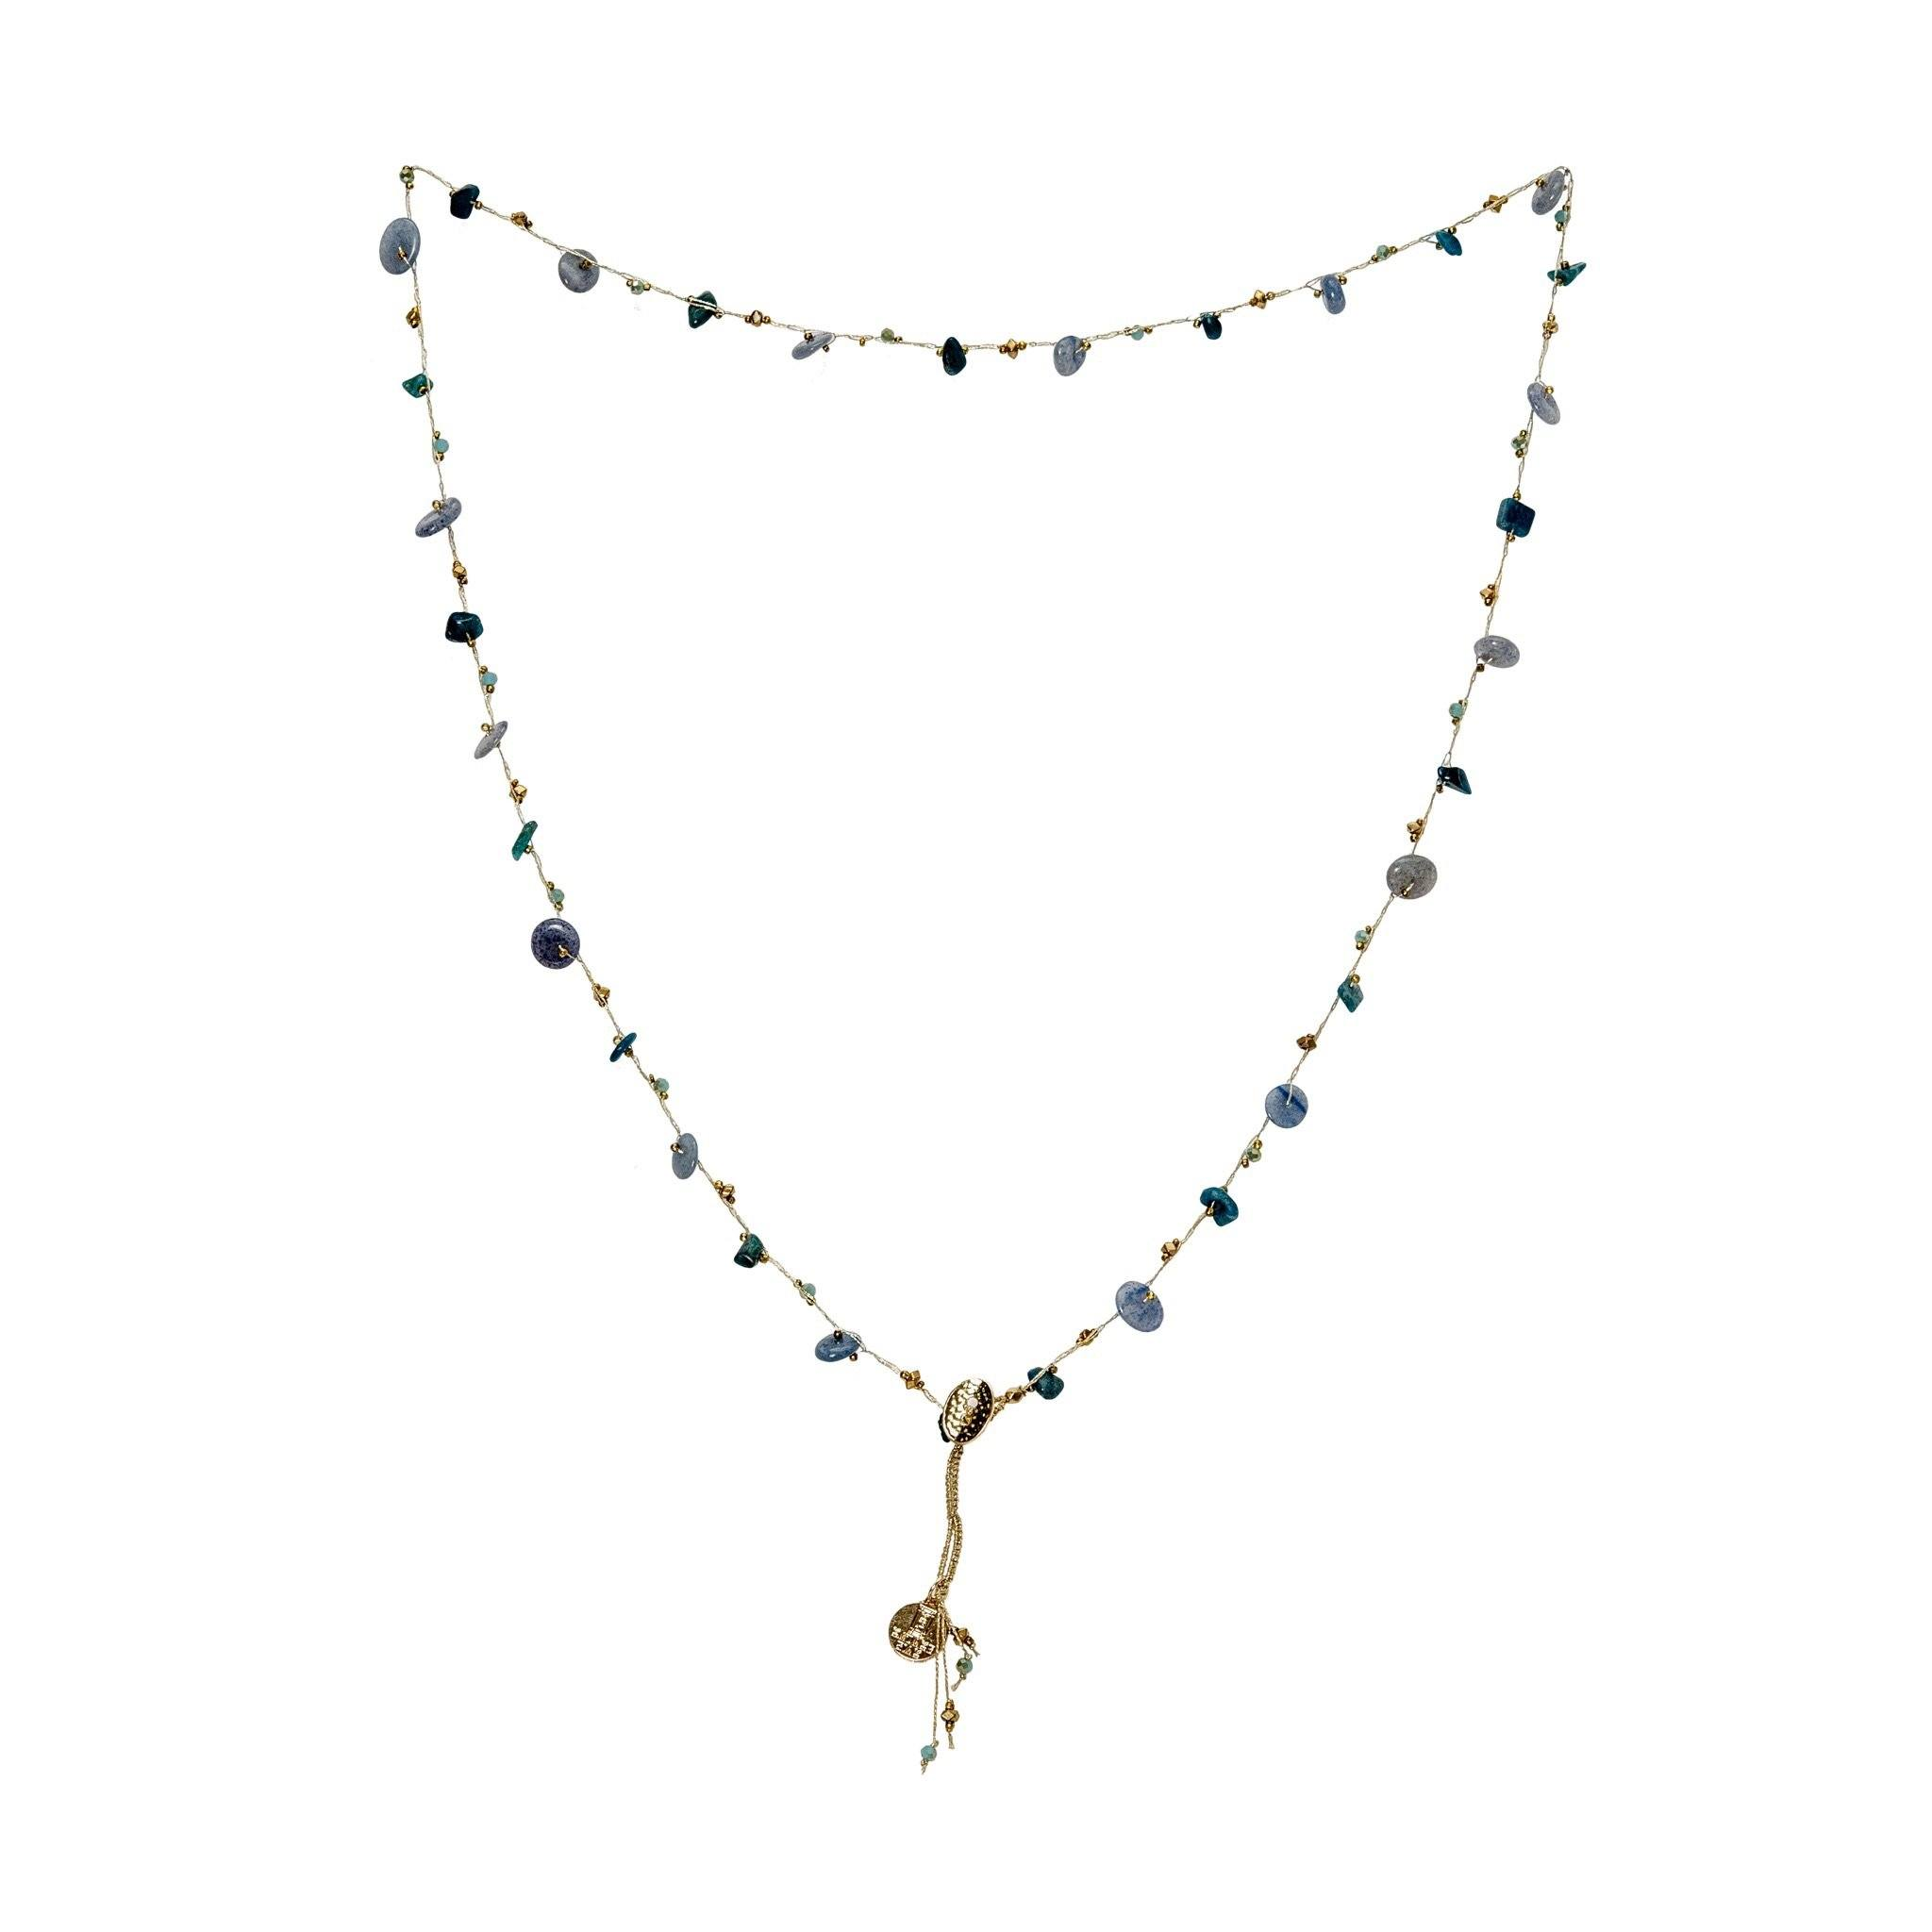 LUKA blue chalcedony necklace - MadamSiam